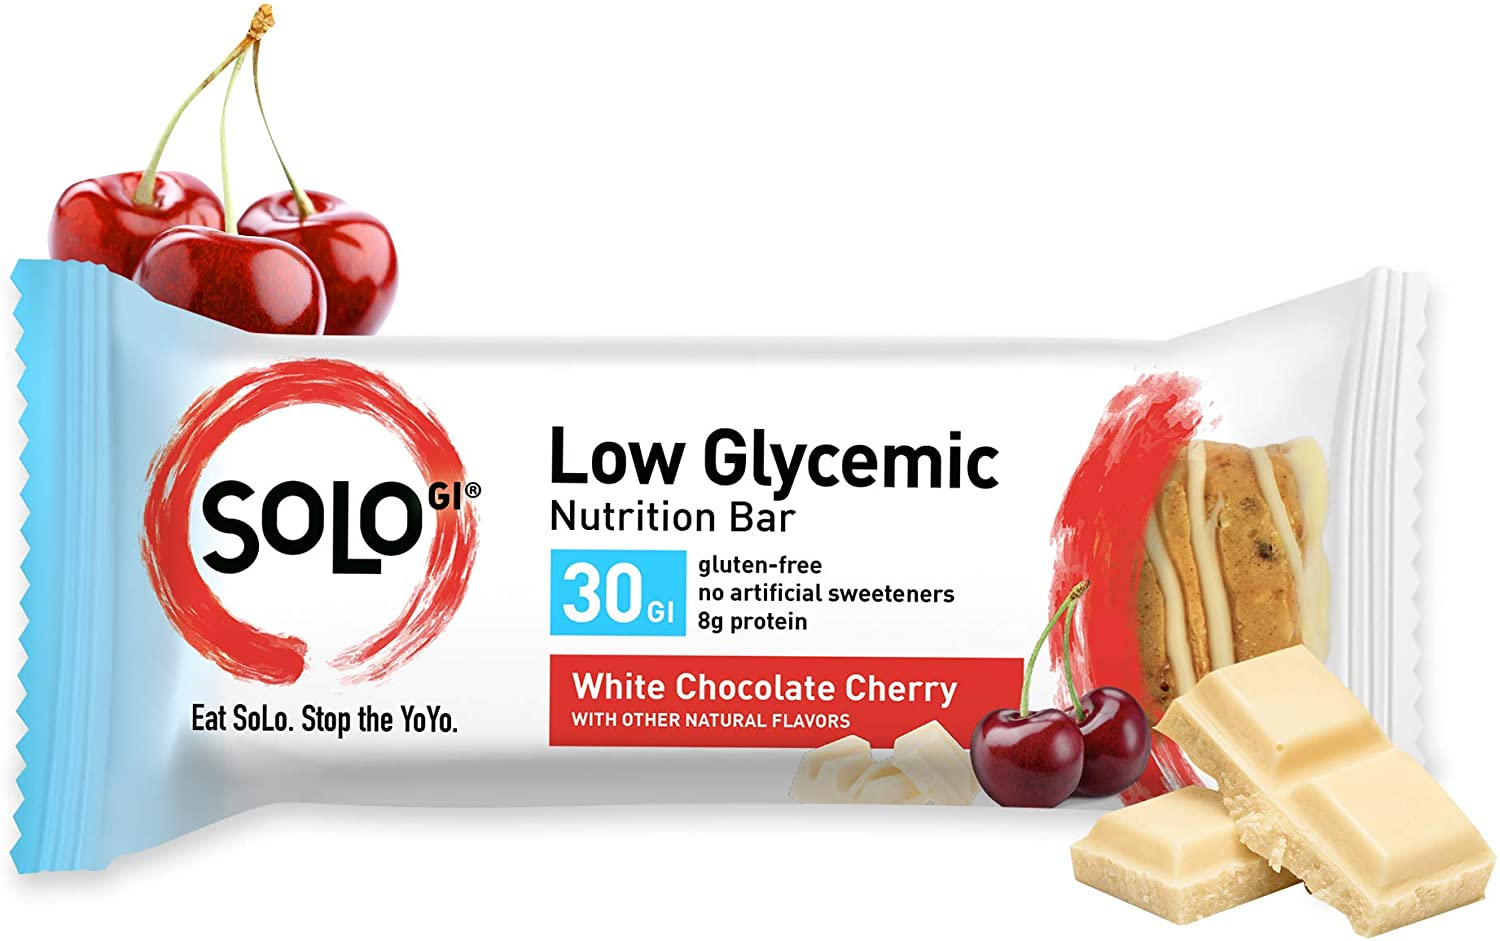 White Chocolate Cherry, Low Glycemic Protein Bars,Gluten Free,Slow Release Energy, Weight Management, Bars for Pre and Post Workout 10-12 Grams of Protein, 40-50g per Bar, 1 Box of 6 Bars -Solo Bars